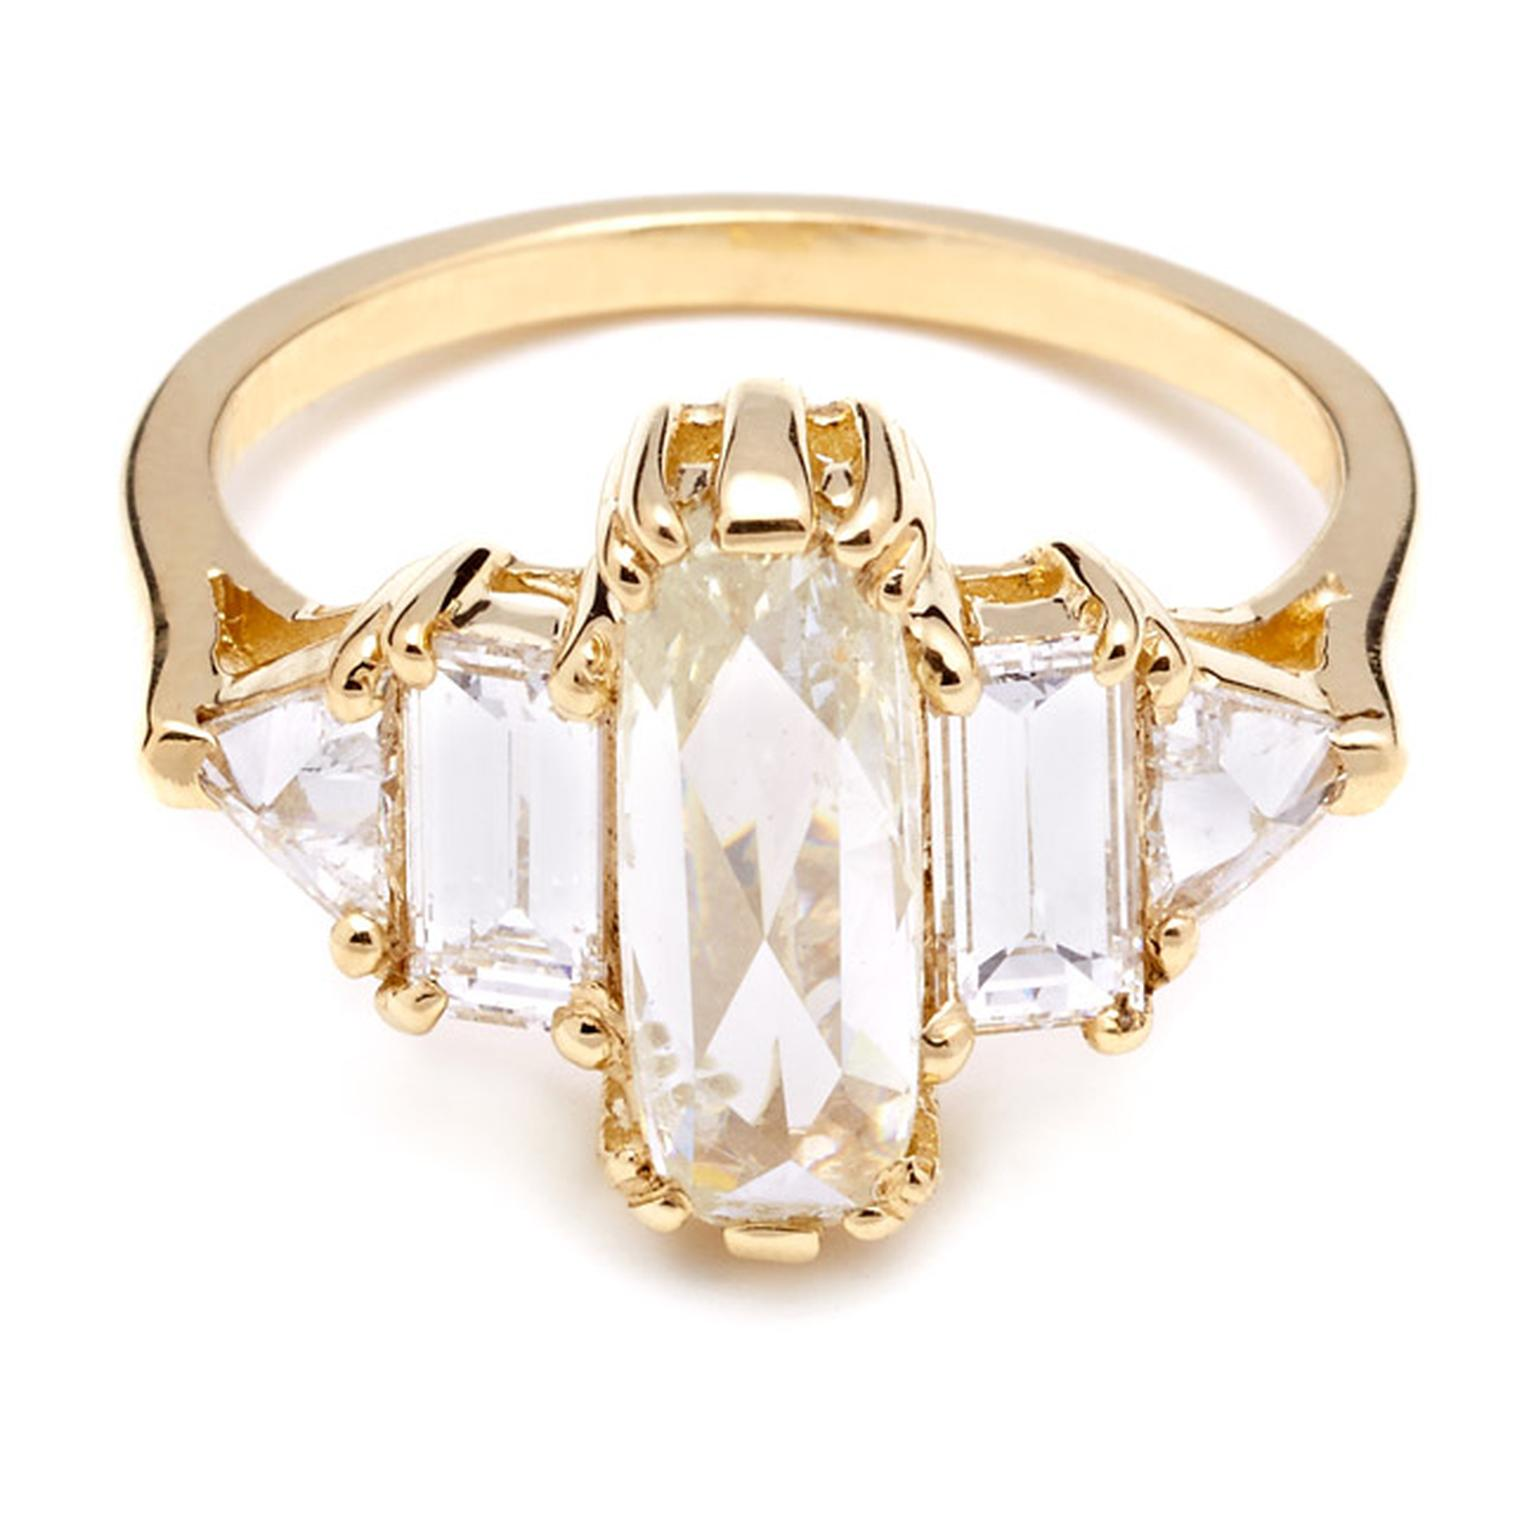 Anna Sheffield Theda ring, with a central elongated rose-cut pale yellow diamond flanked by four white diamonds in yellow gold.